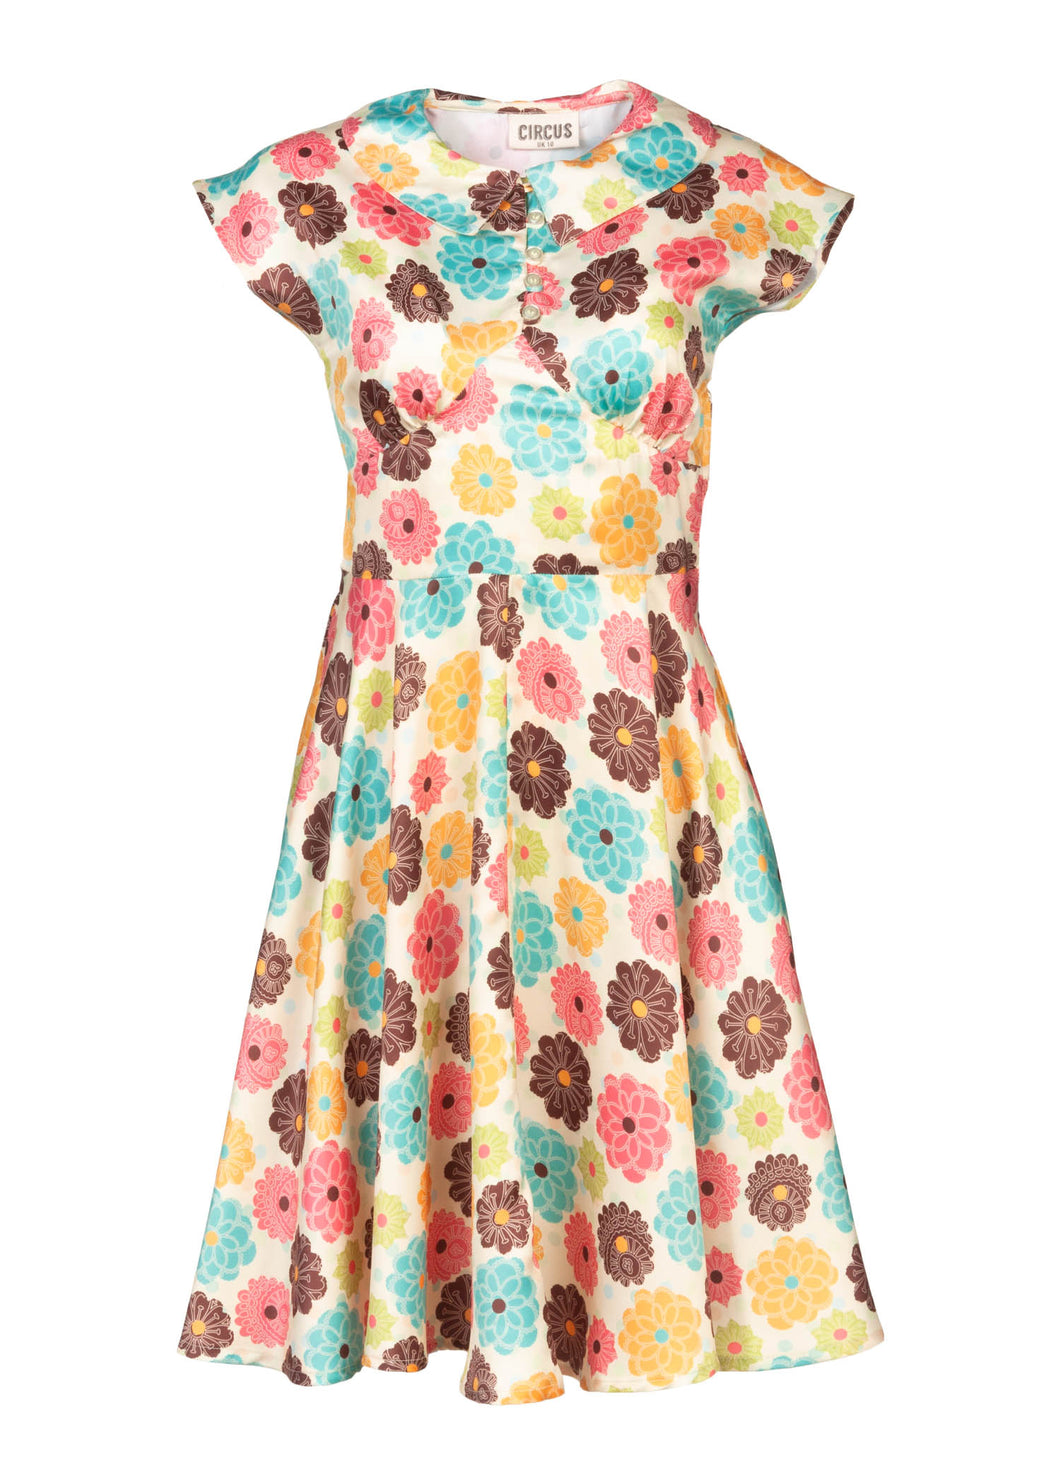 Circus – Floral Collar Dress - Lemon - CD643